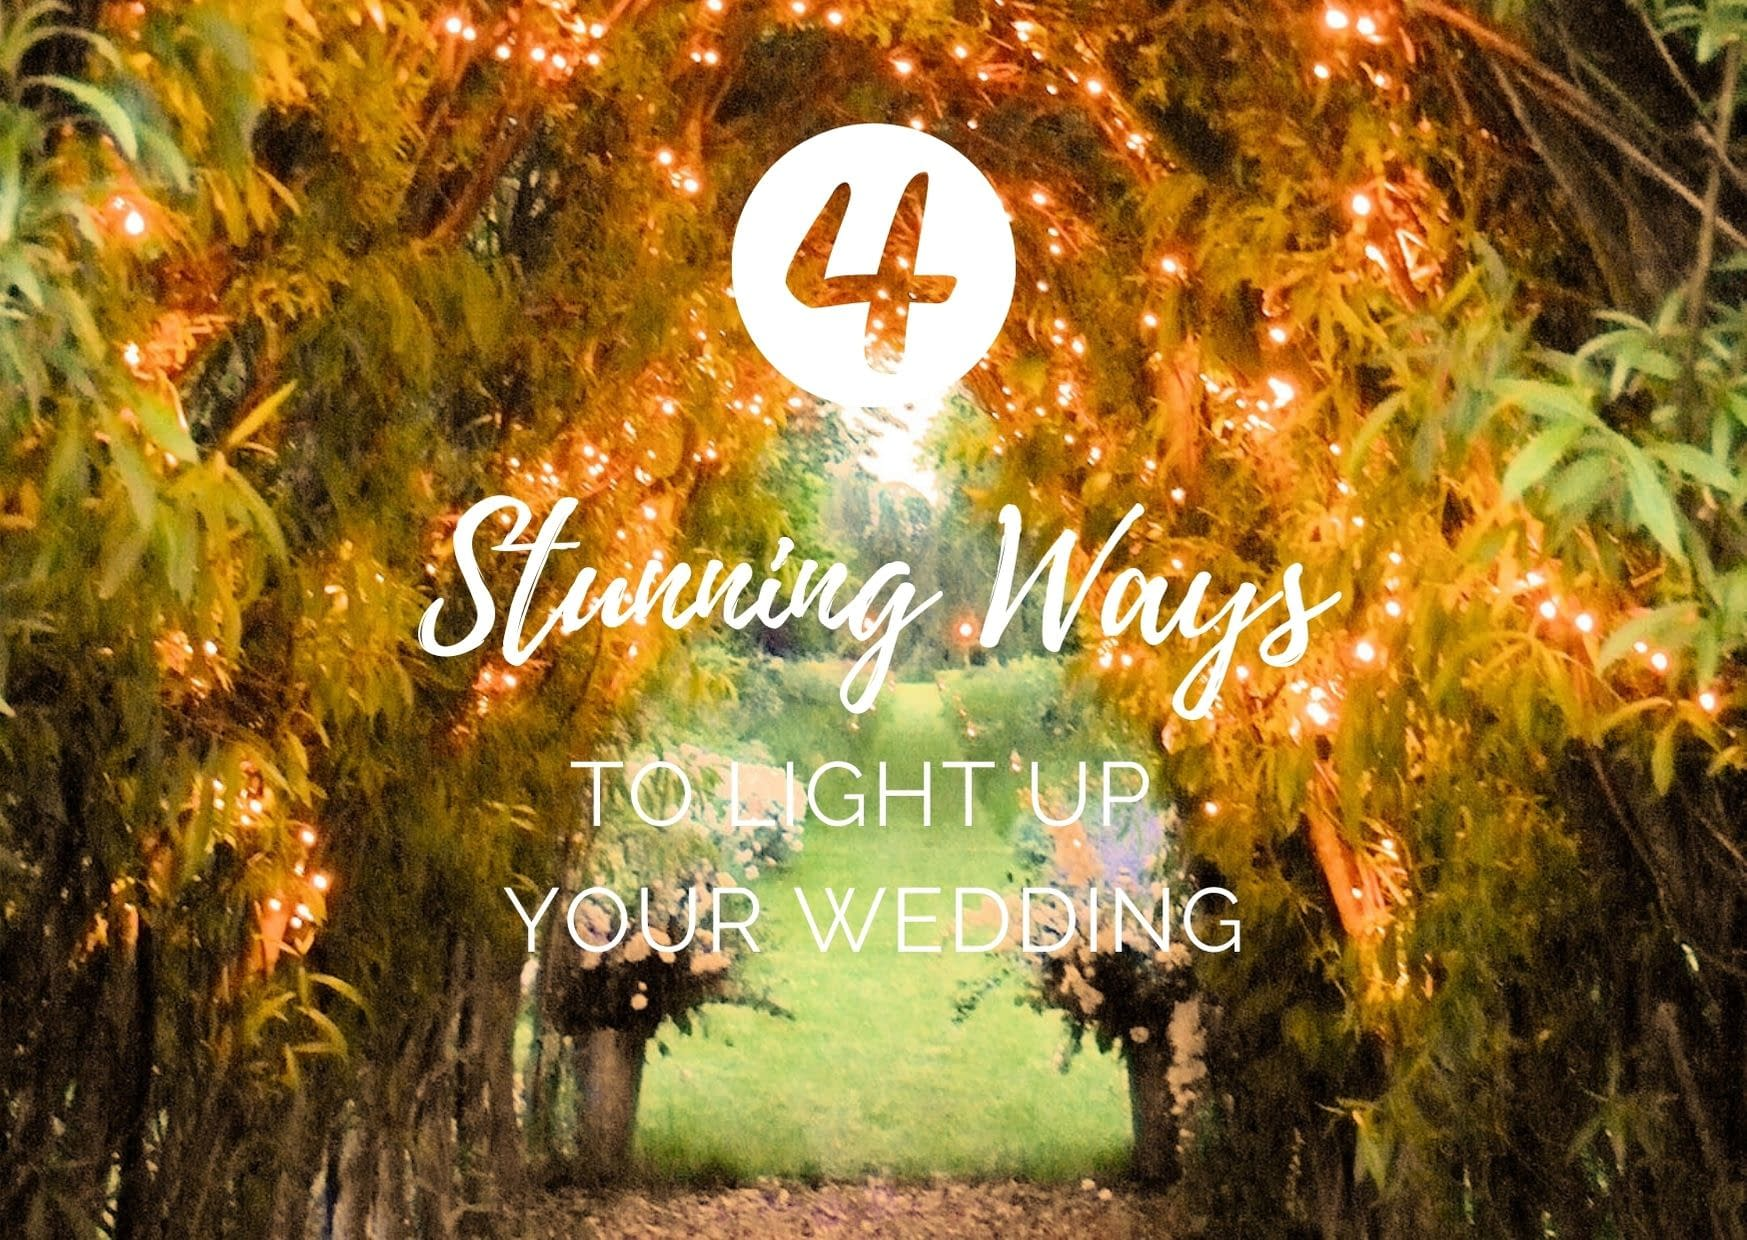 4 stunning ways to light up your wedding blog graphic for Stressfree the Venue Transformers event design and decor est 1995